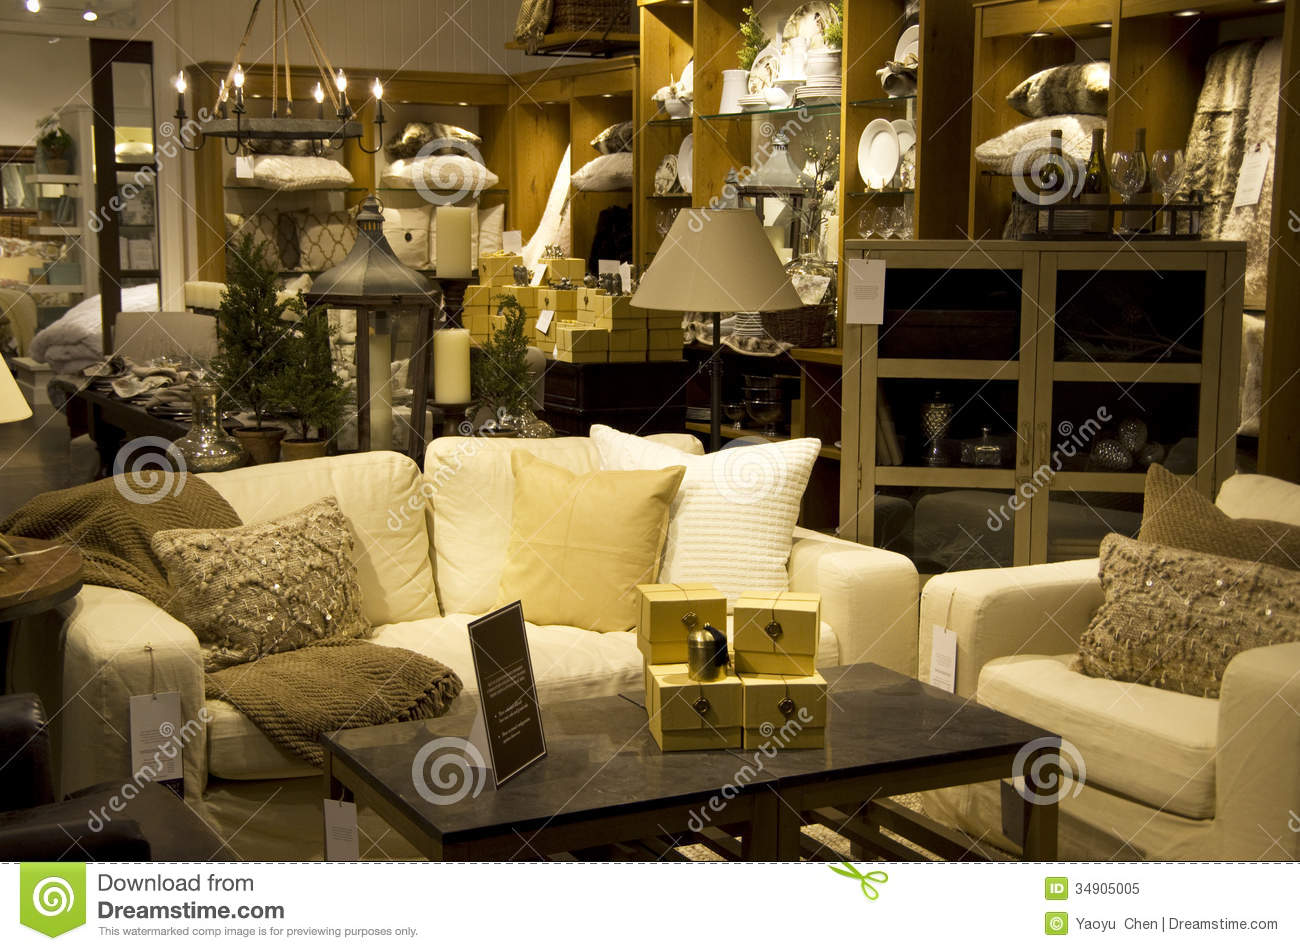 Luxury furniture home decor store stock image image for Home decor furniture